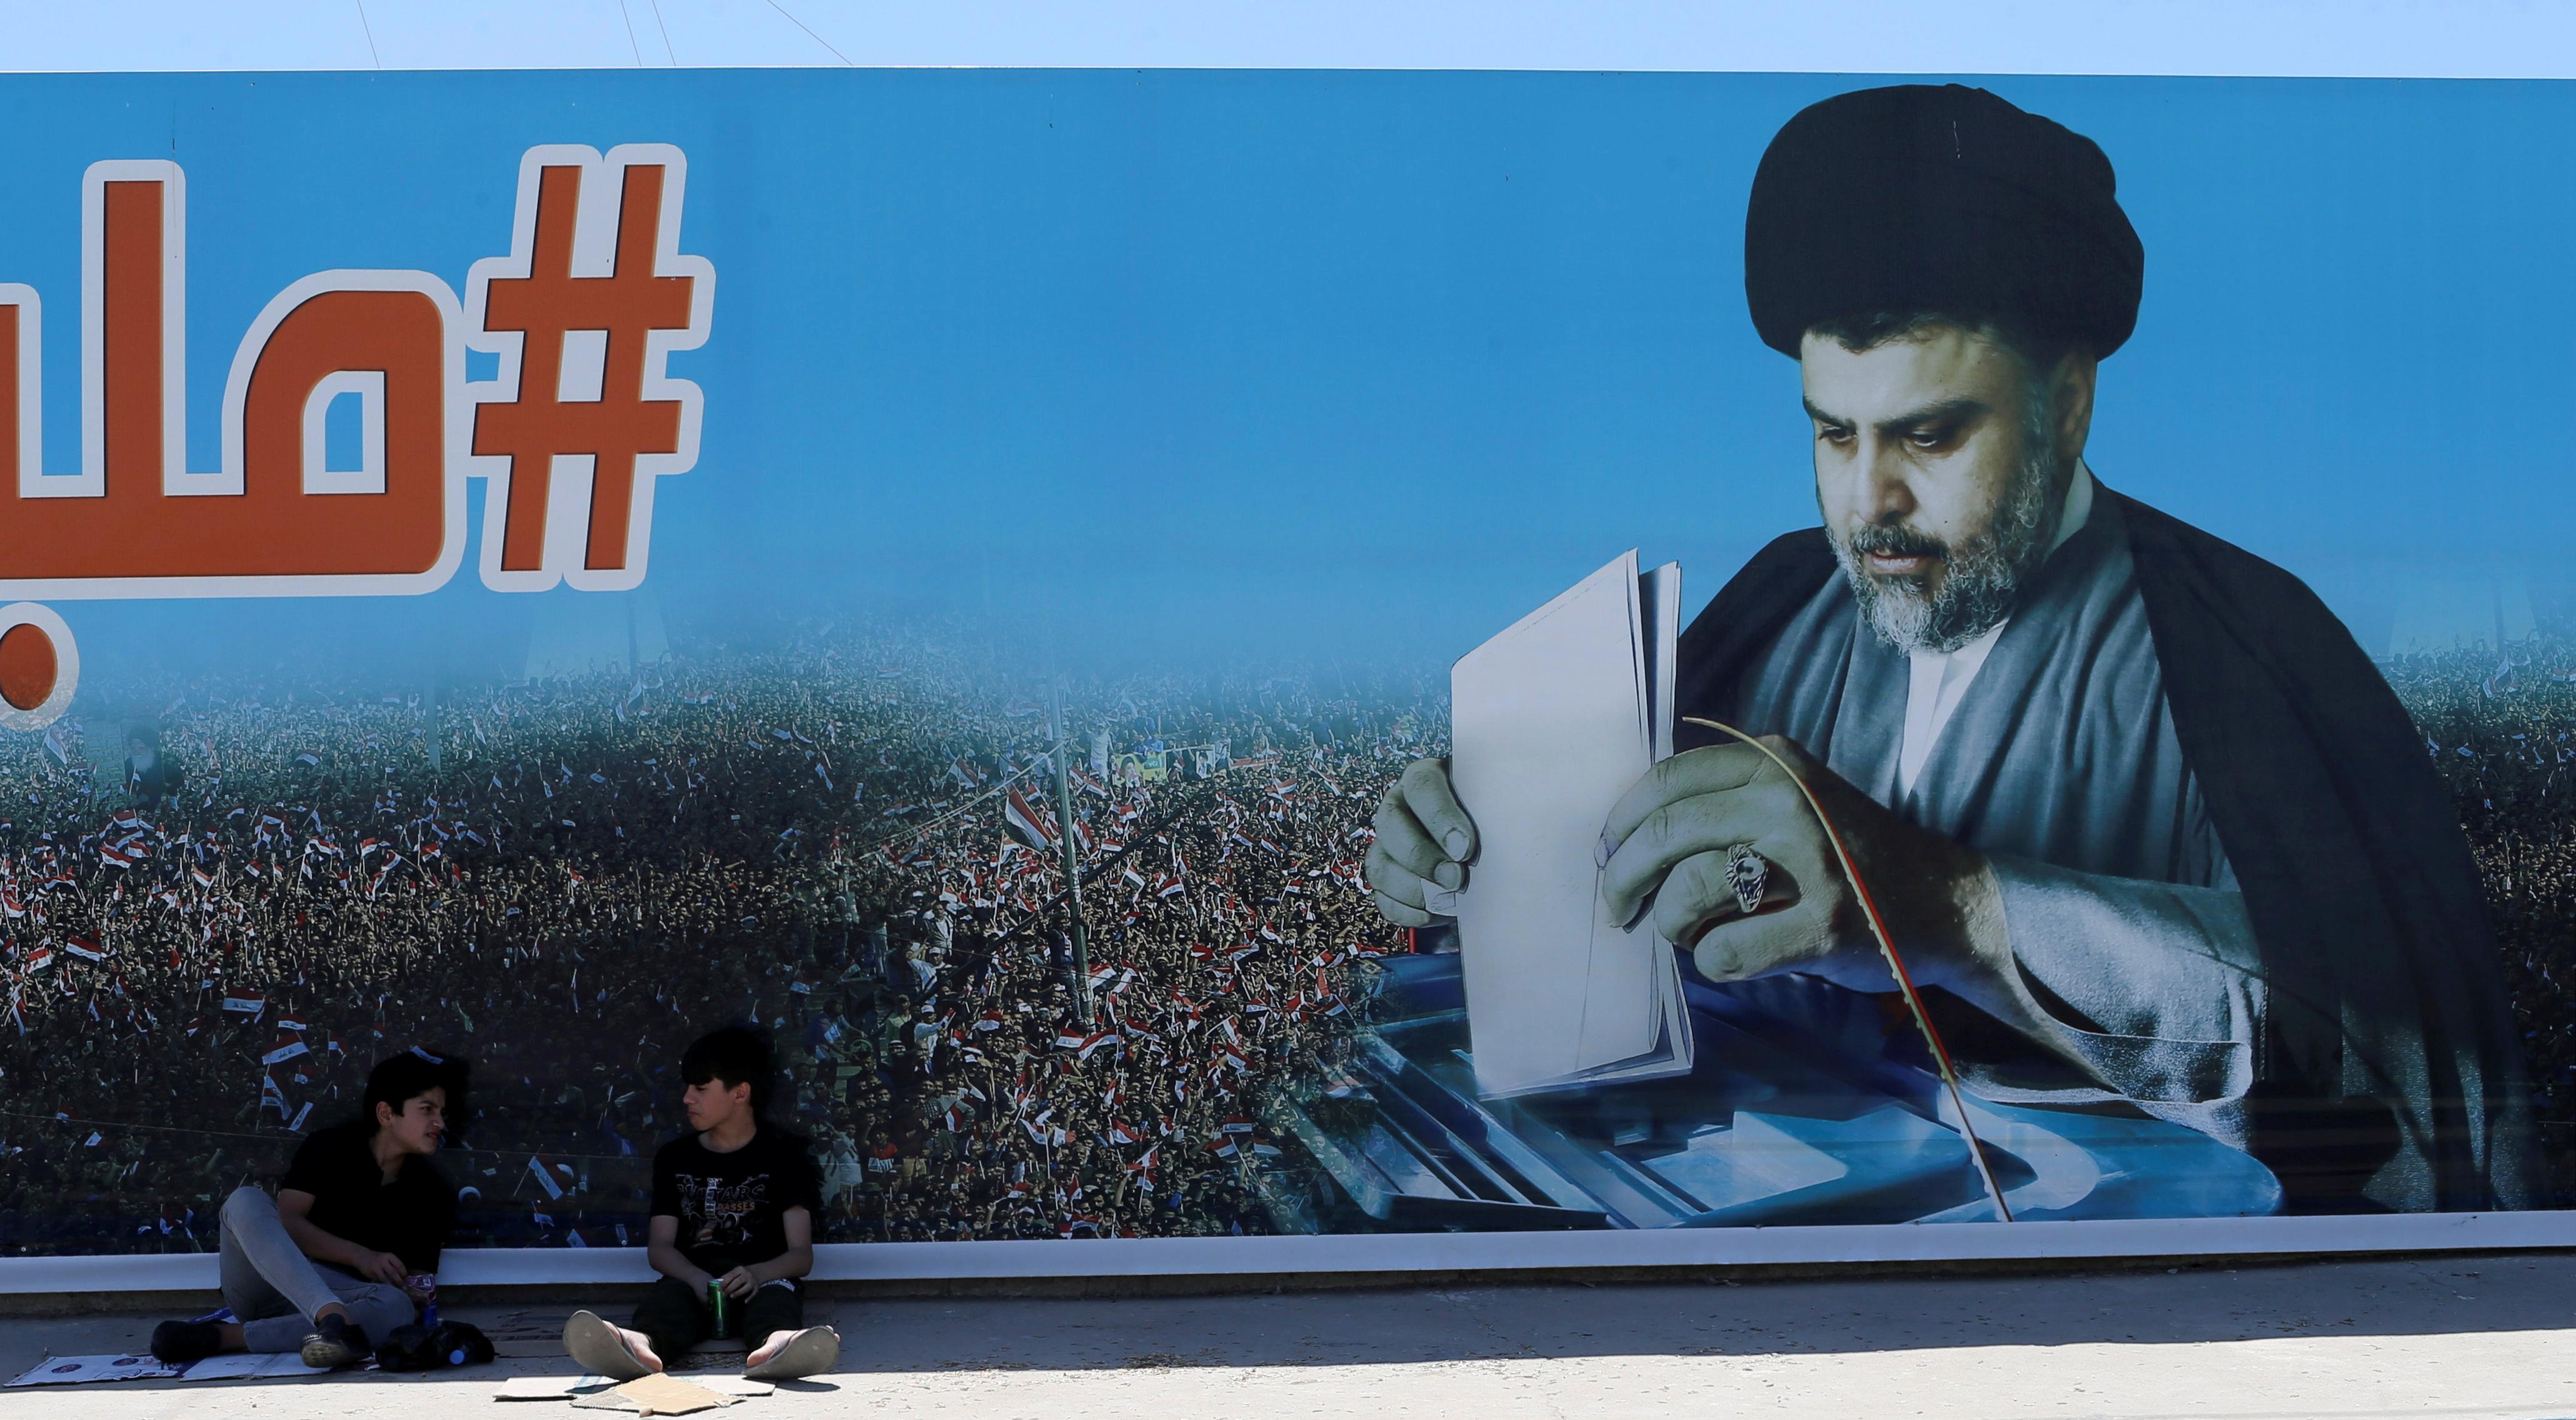 A poster of Iraqi Shi'ite cleric Moqtada al-Sadr in the Sadr City district of Baghdad, Iraq May 19, 2018. Thaier al-Sudani